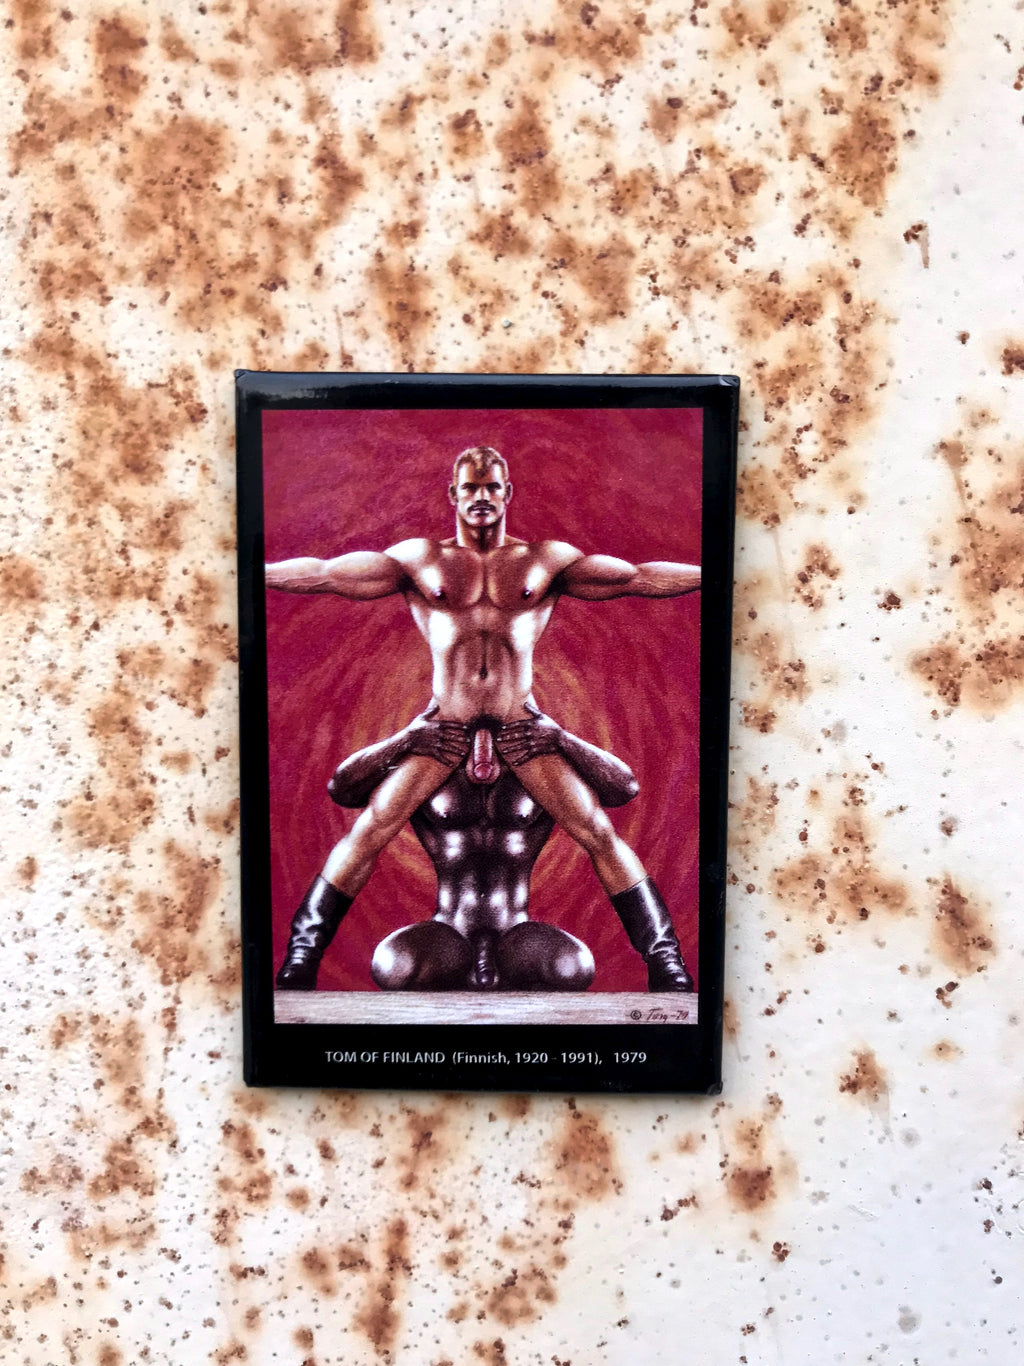 Vitruvian Men Magnets